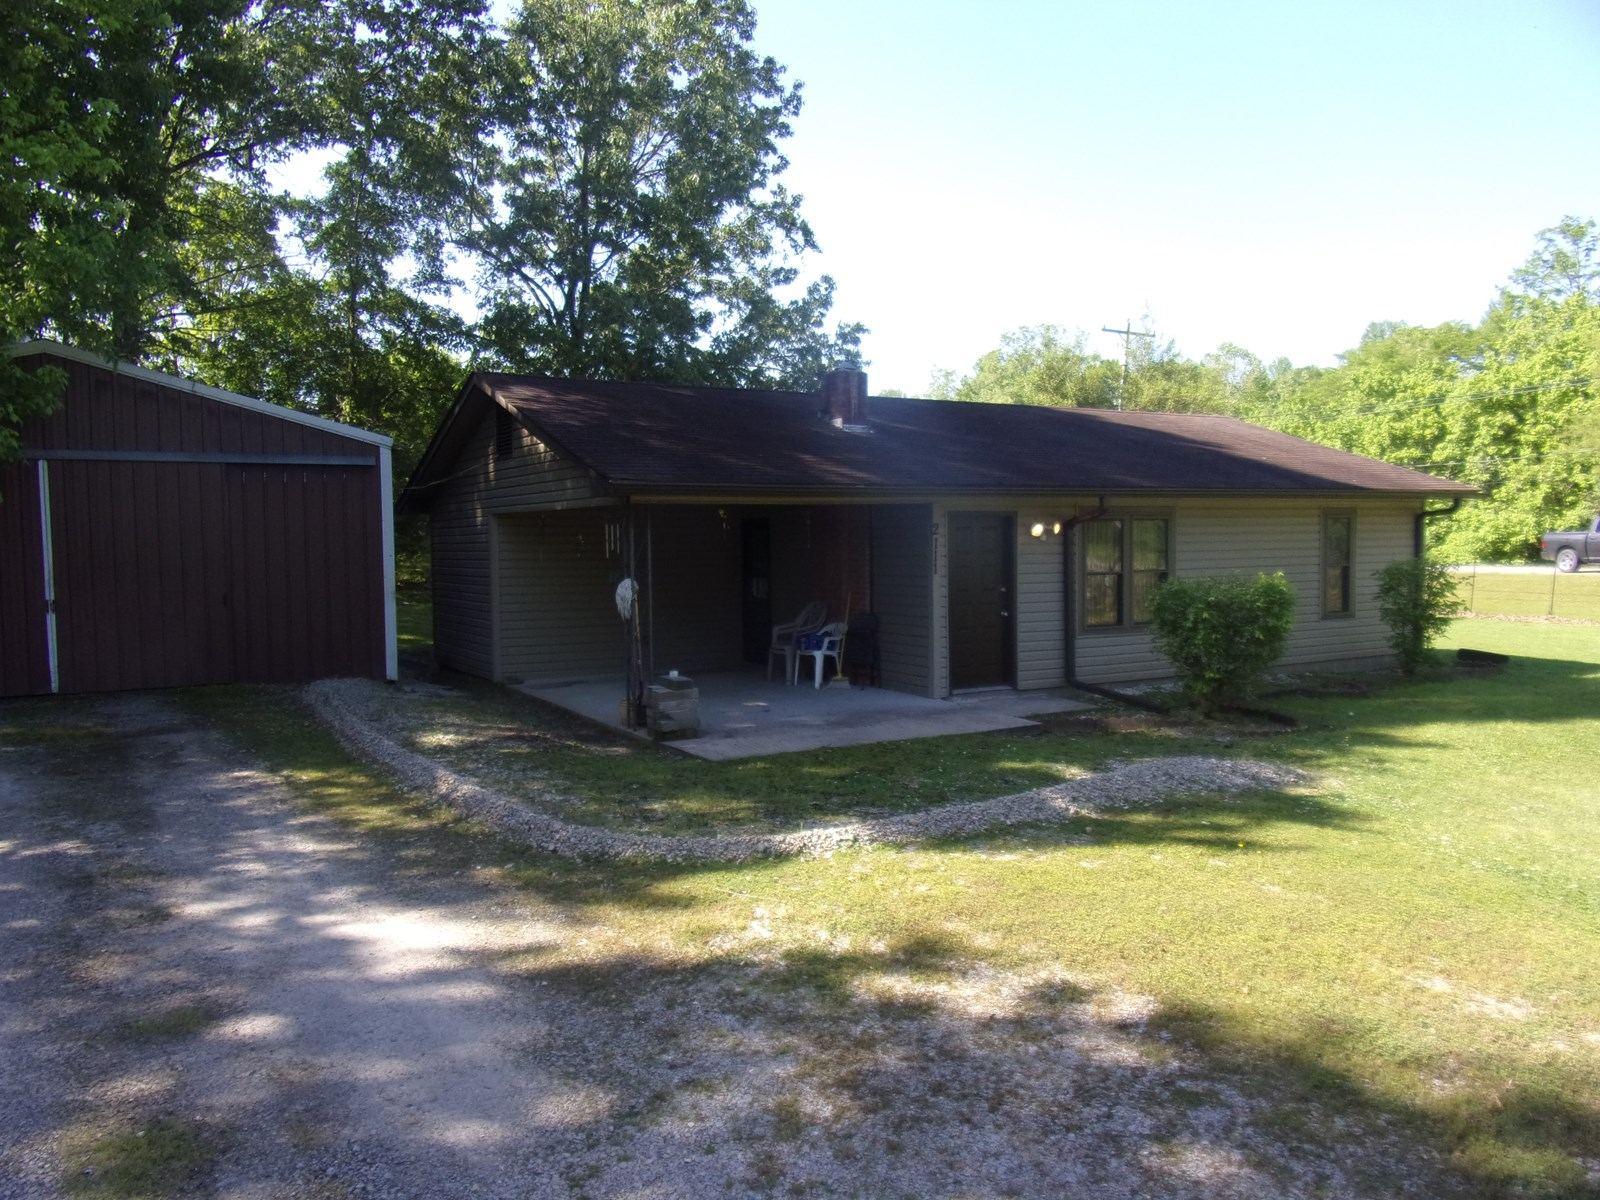 Arkansas Home at edge of Town for sale in Pocahontas, AR